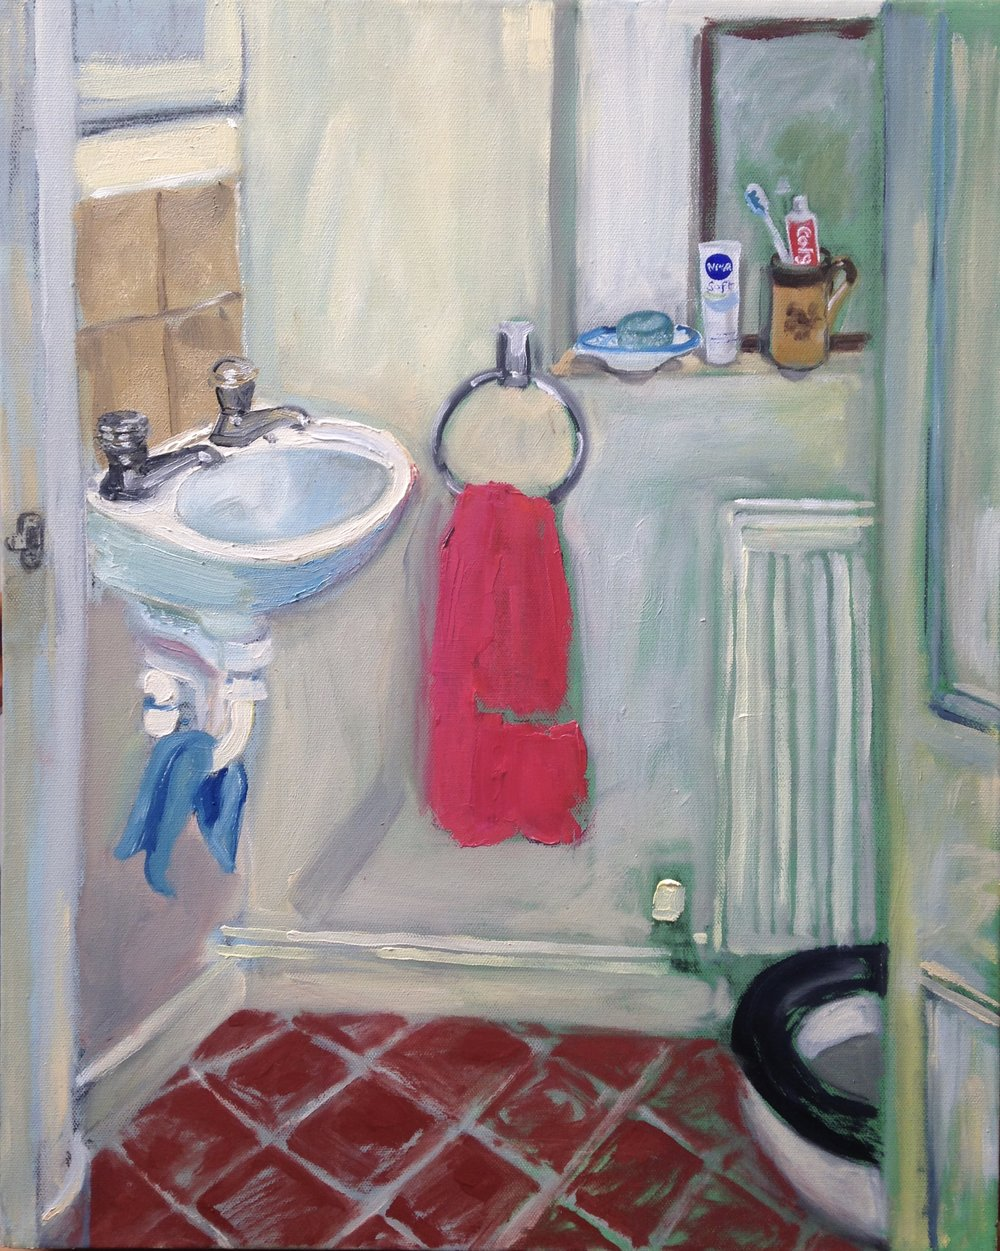 PINK TOWEL  Oil on Canvass | 41 cm x 51 cm | 2017  Available £400.00